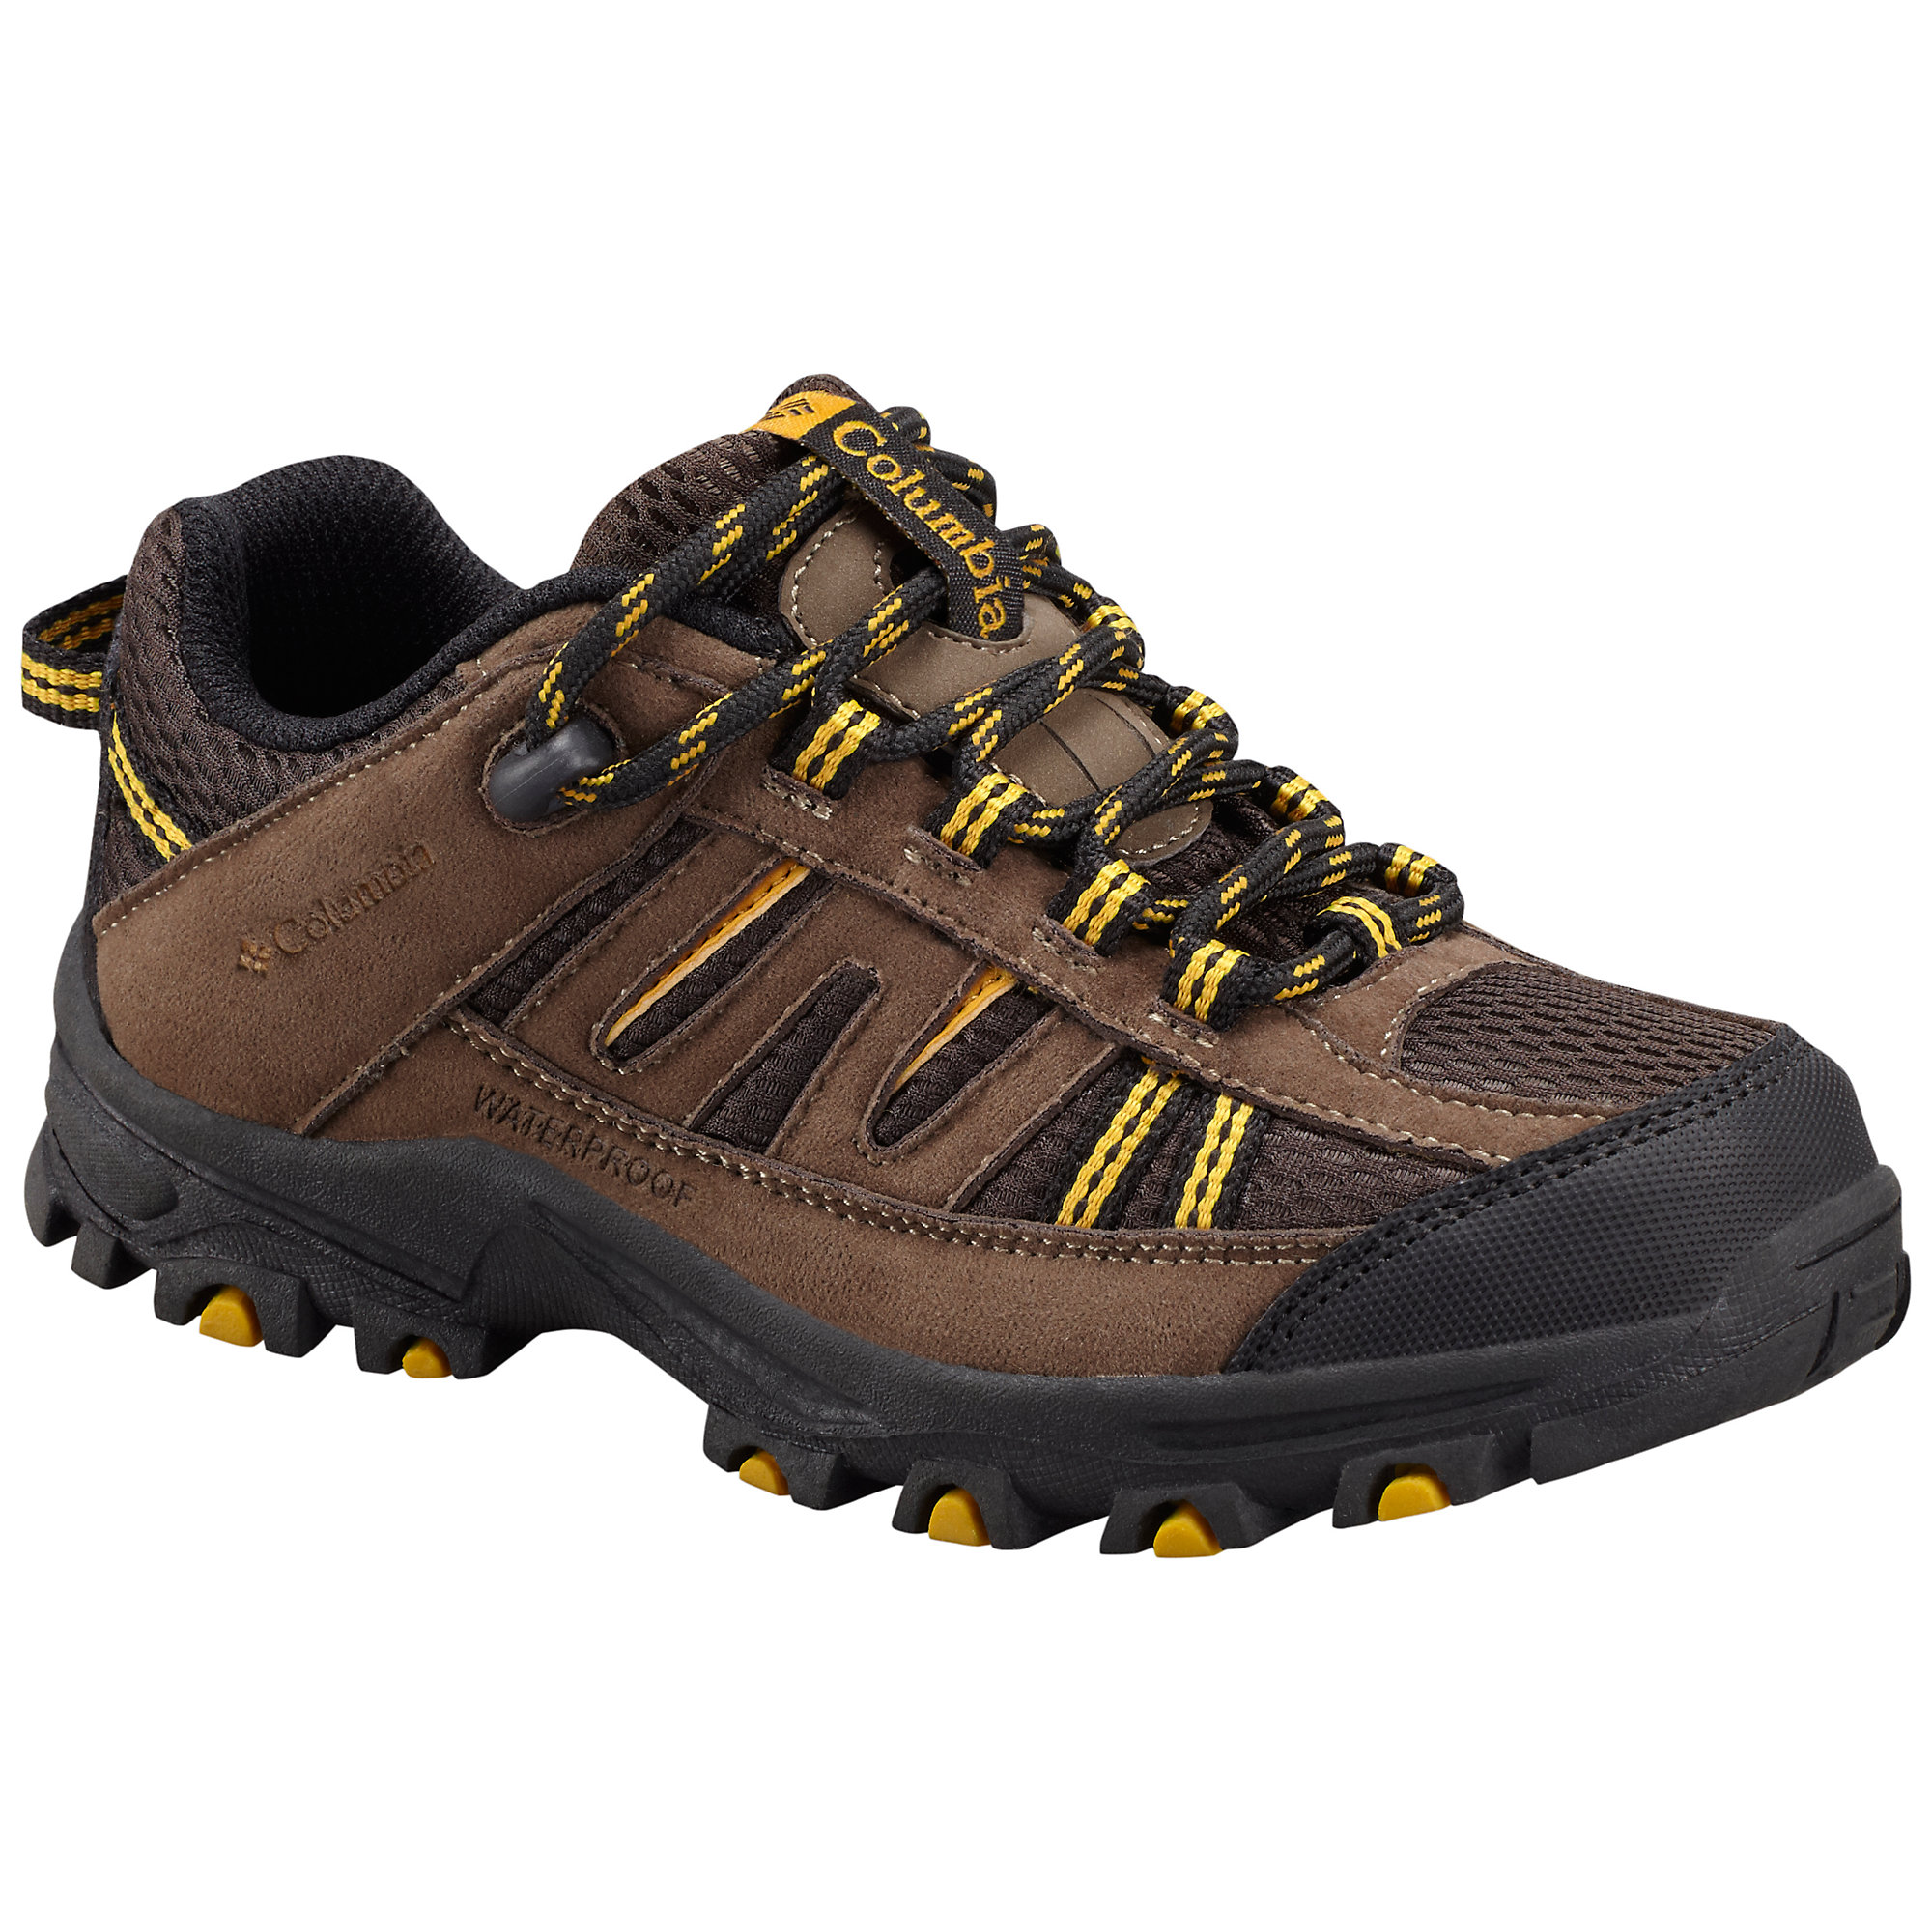 Columbia Pisgah Peak Waterproof